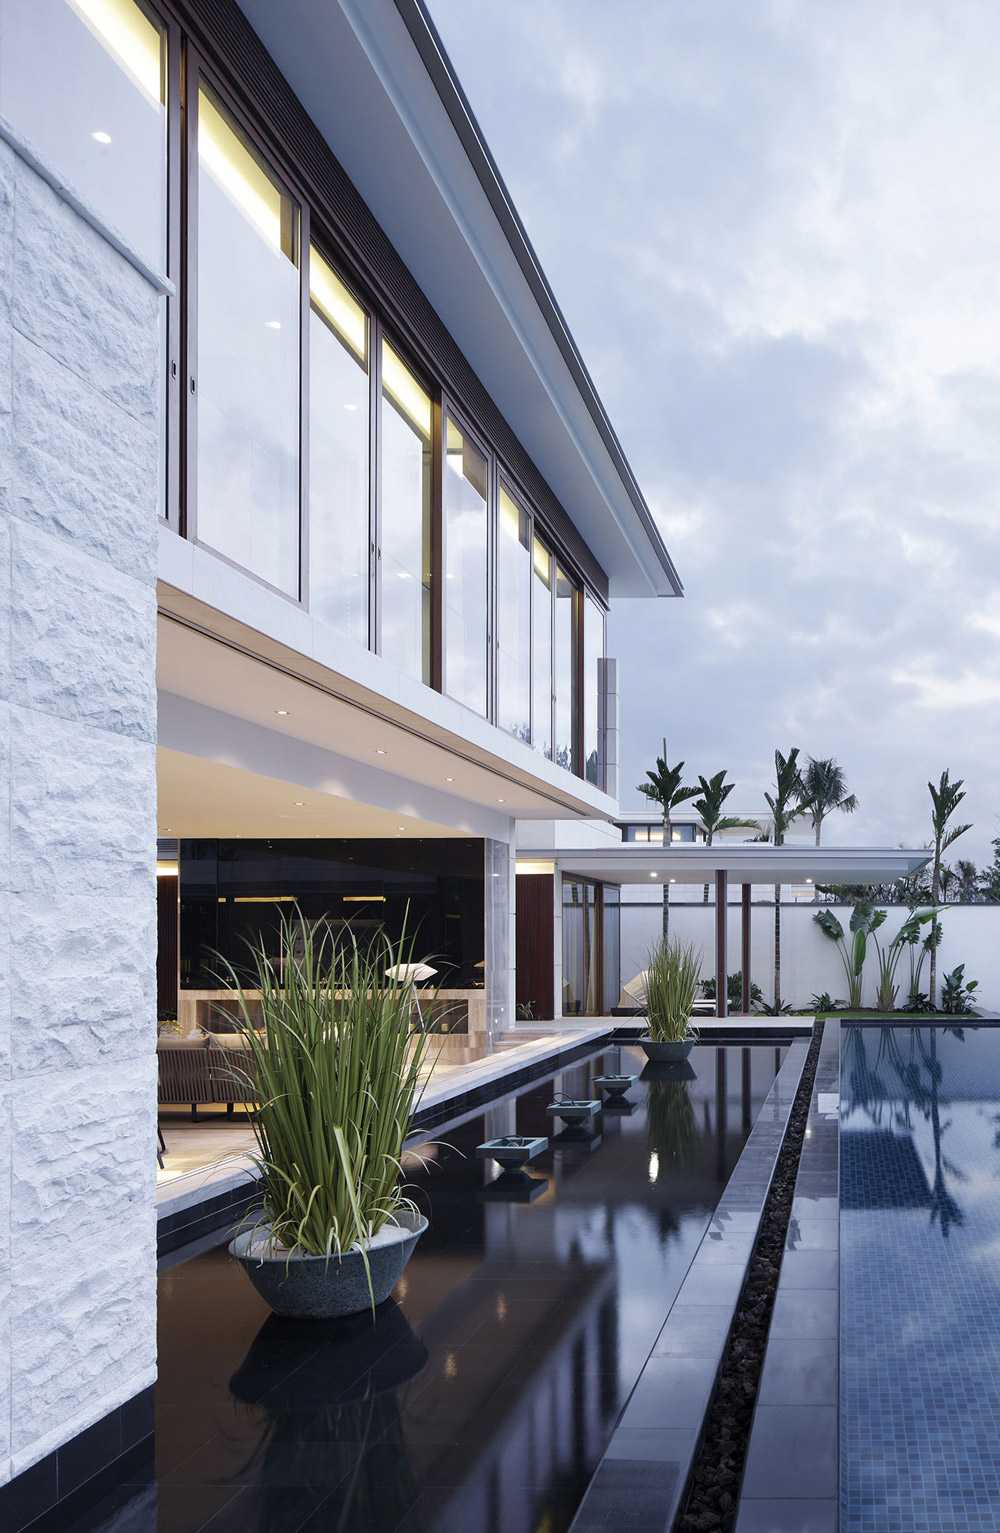 Water Feature, Pool, Beachside Villas in Lingshui, Hainan, China